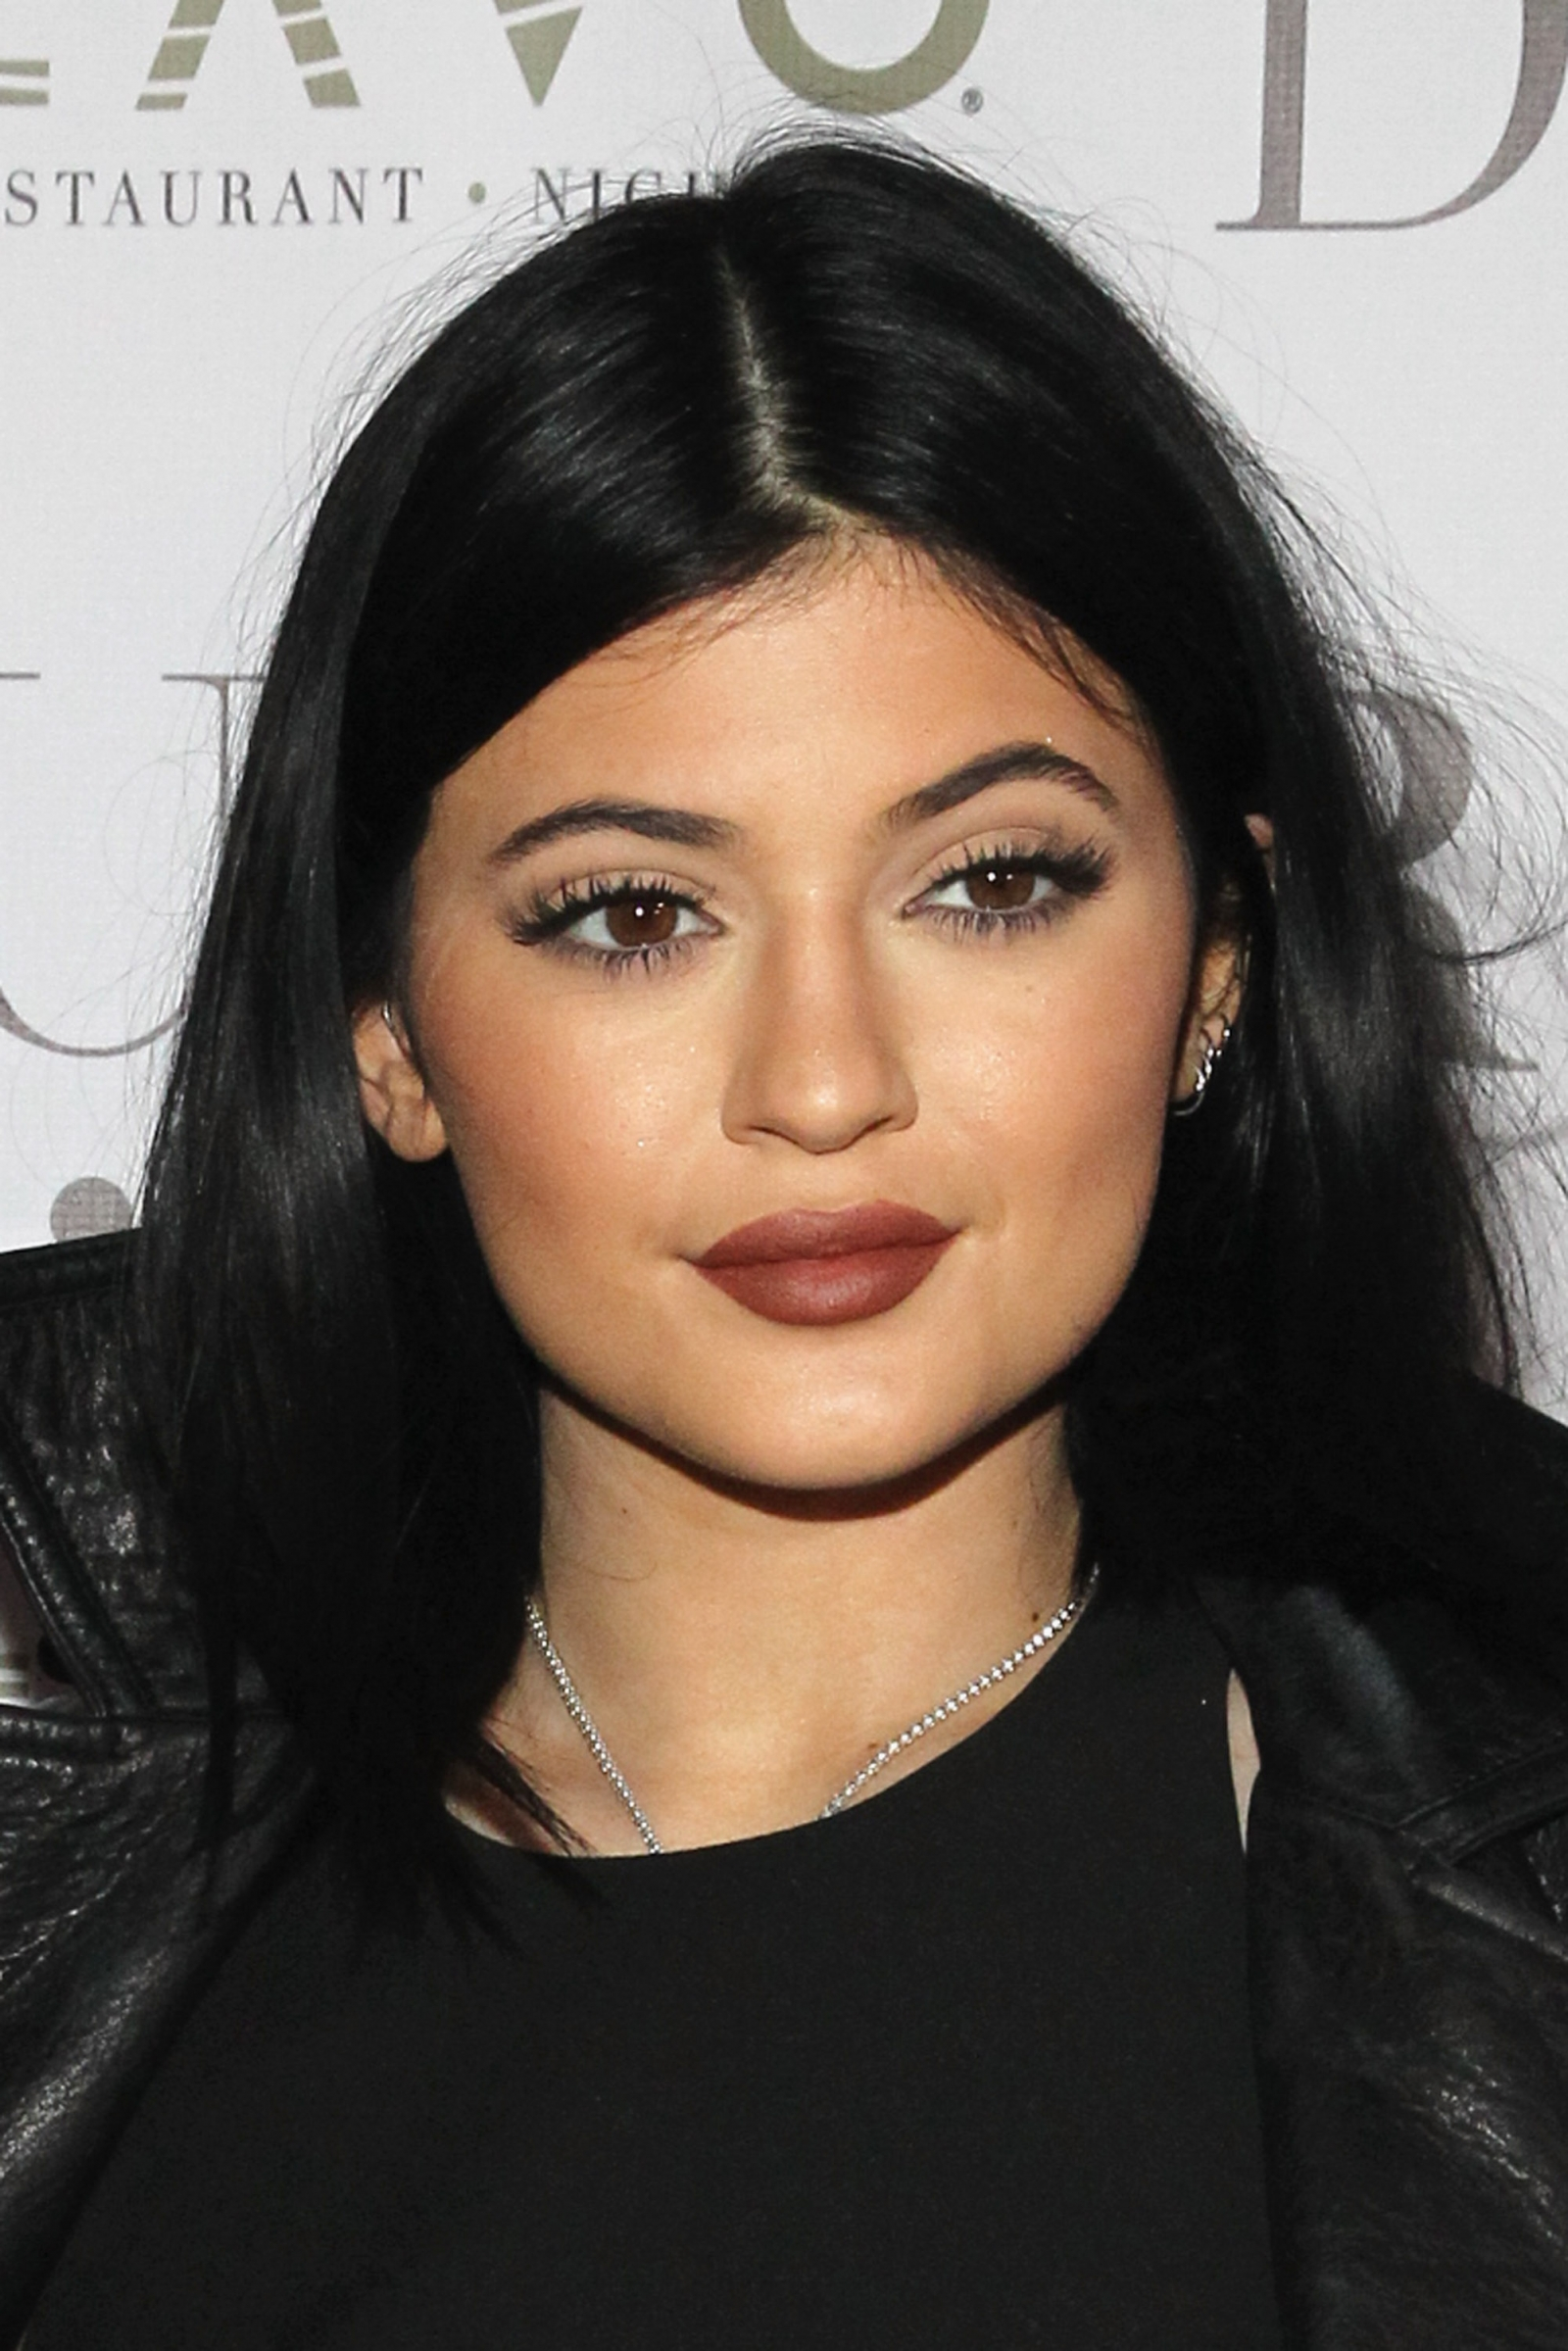 Kylie Jenner Lip Kit Are Colourpop Lipsticks: Is Kylie Jenner The New Katy Perry? Reality Star Wants To